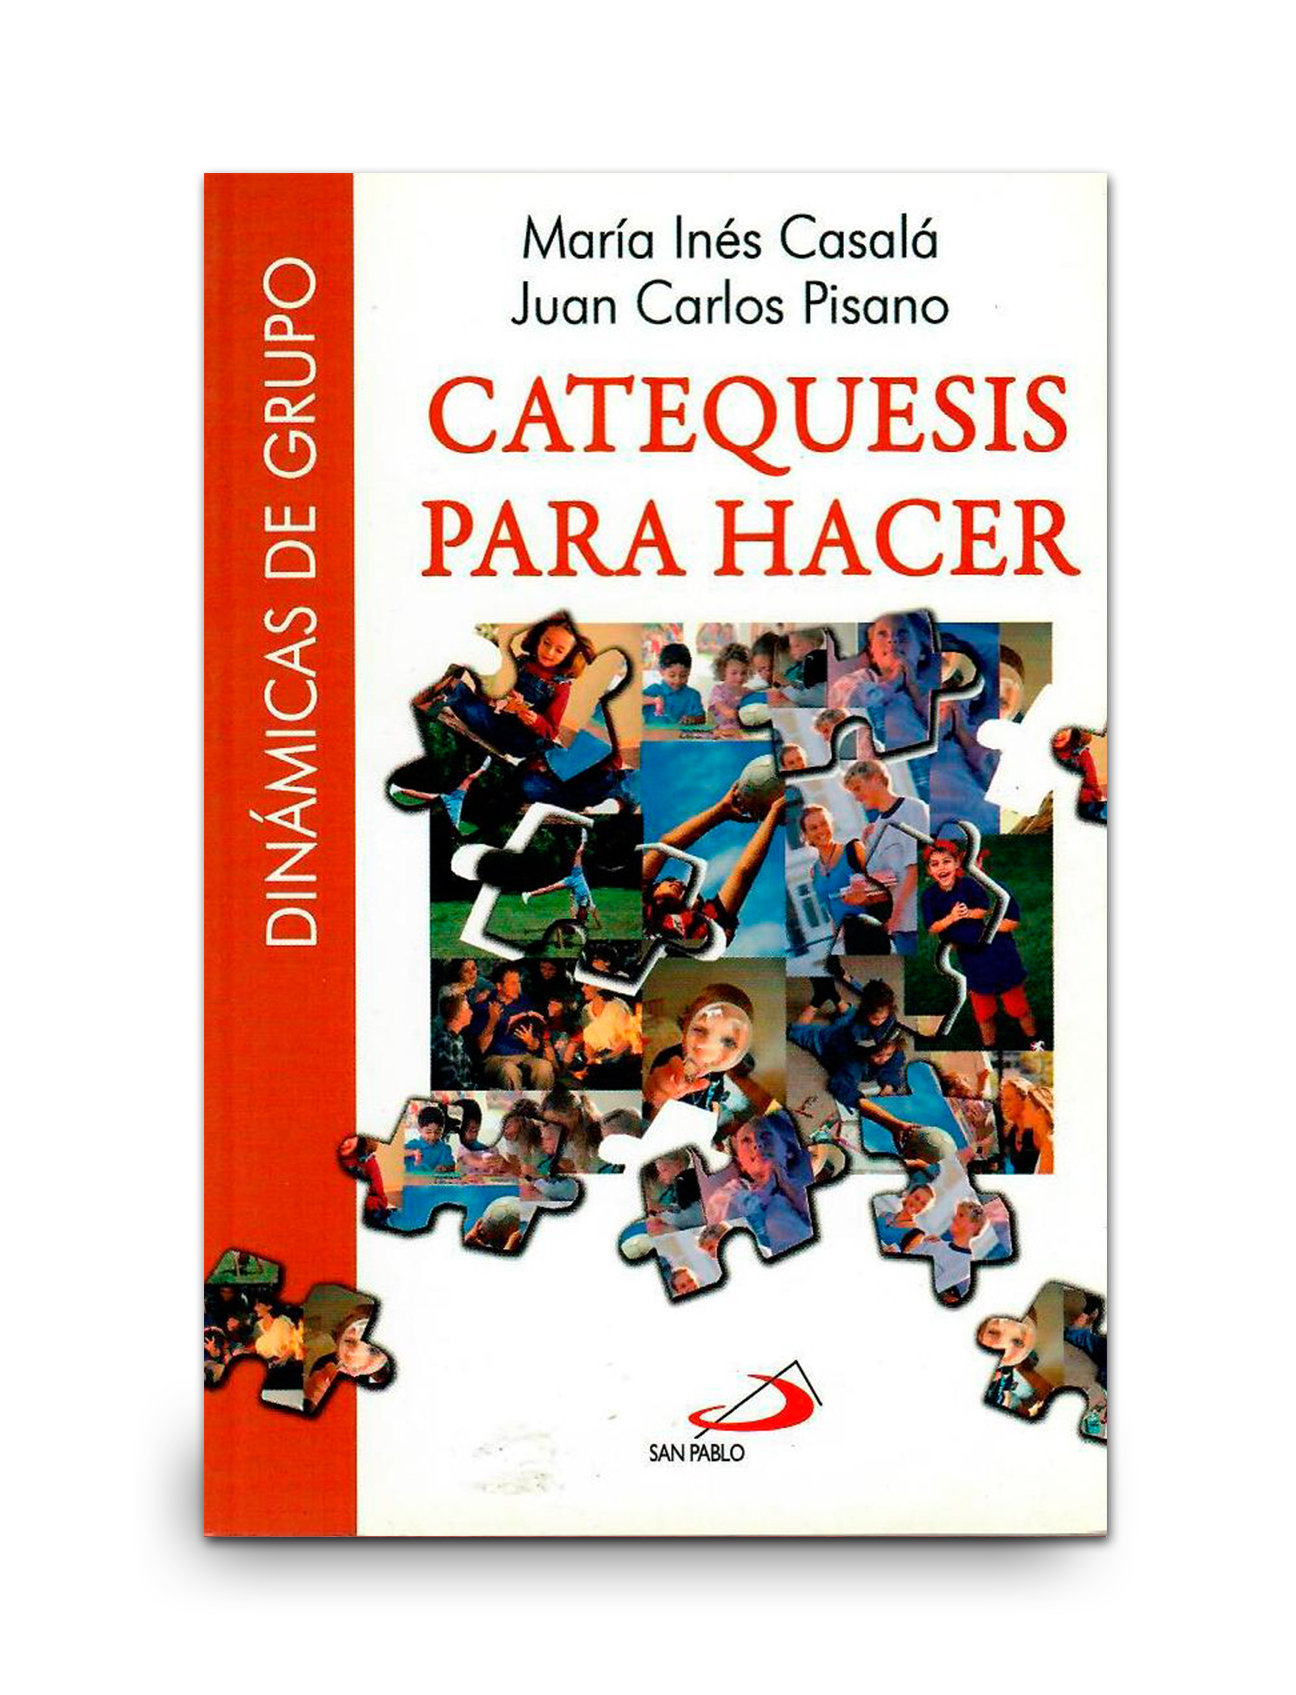 CATEQUESIS PARA HACER